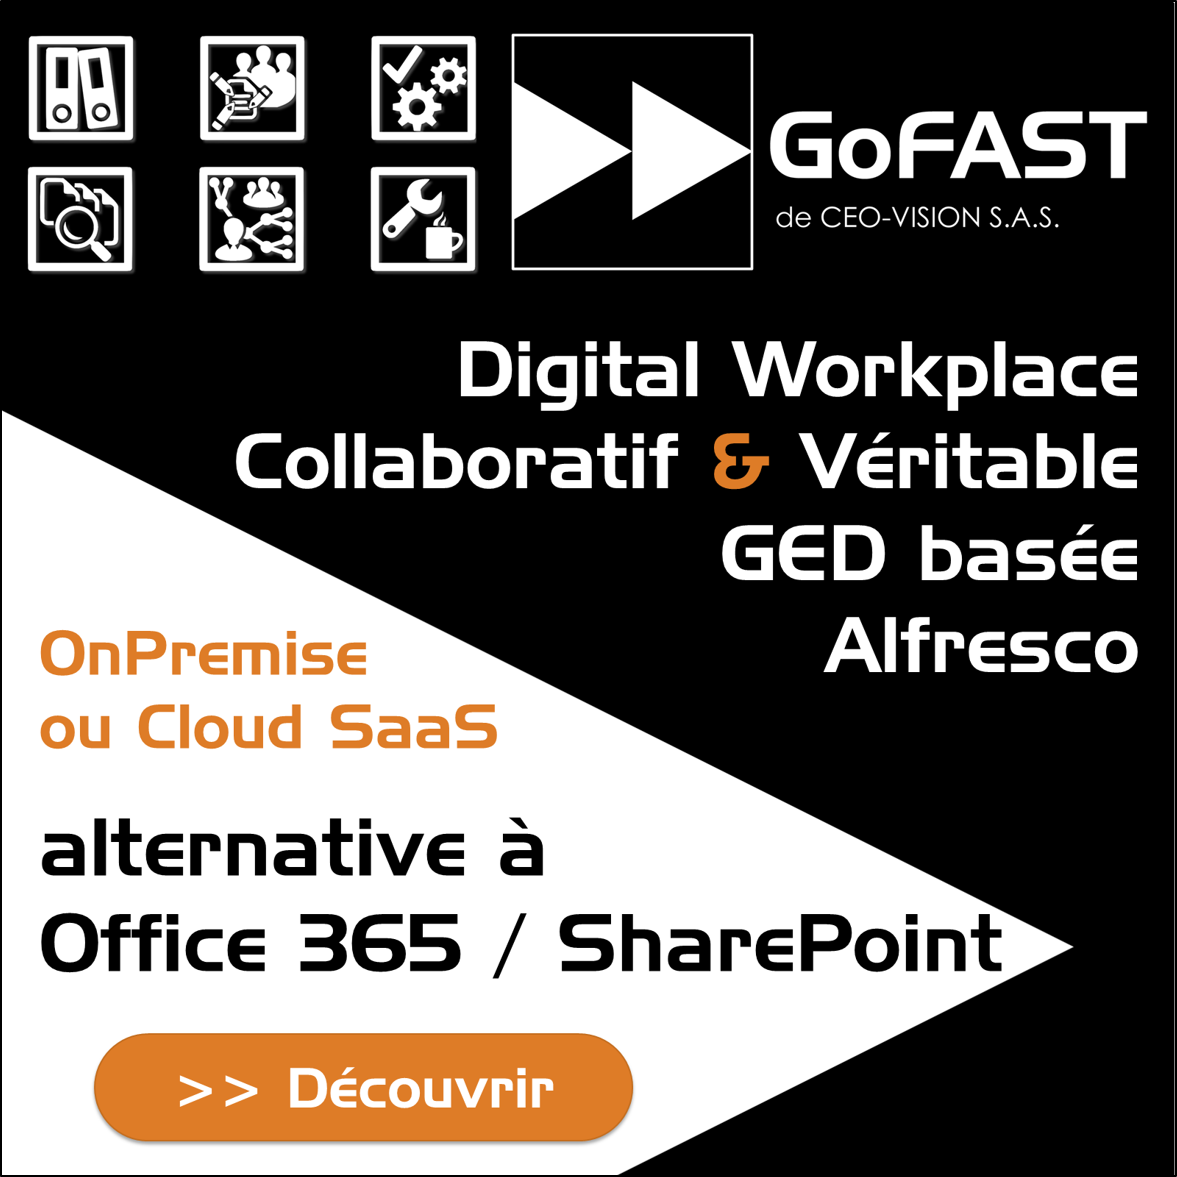 Banniere PUB GoFAST Alternative Office365_Archimag.png